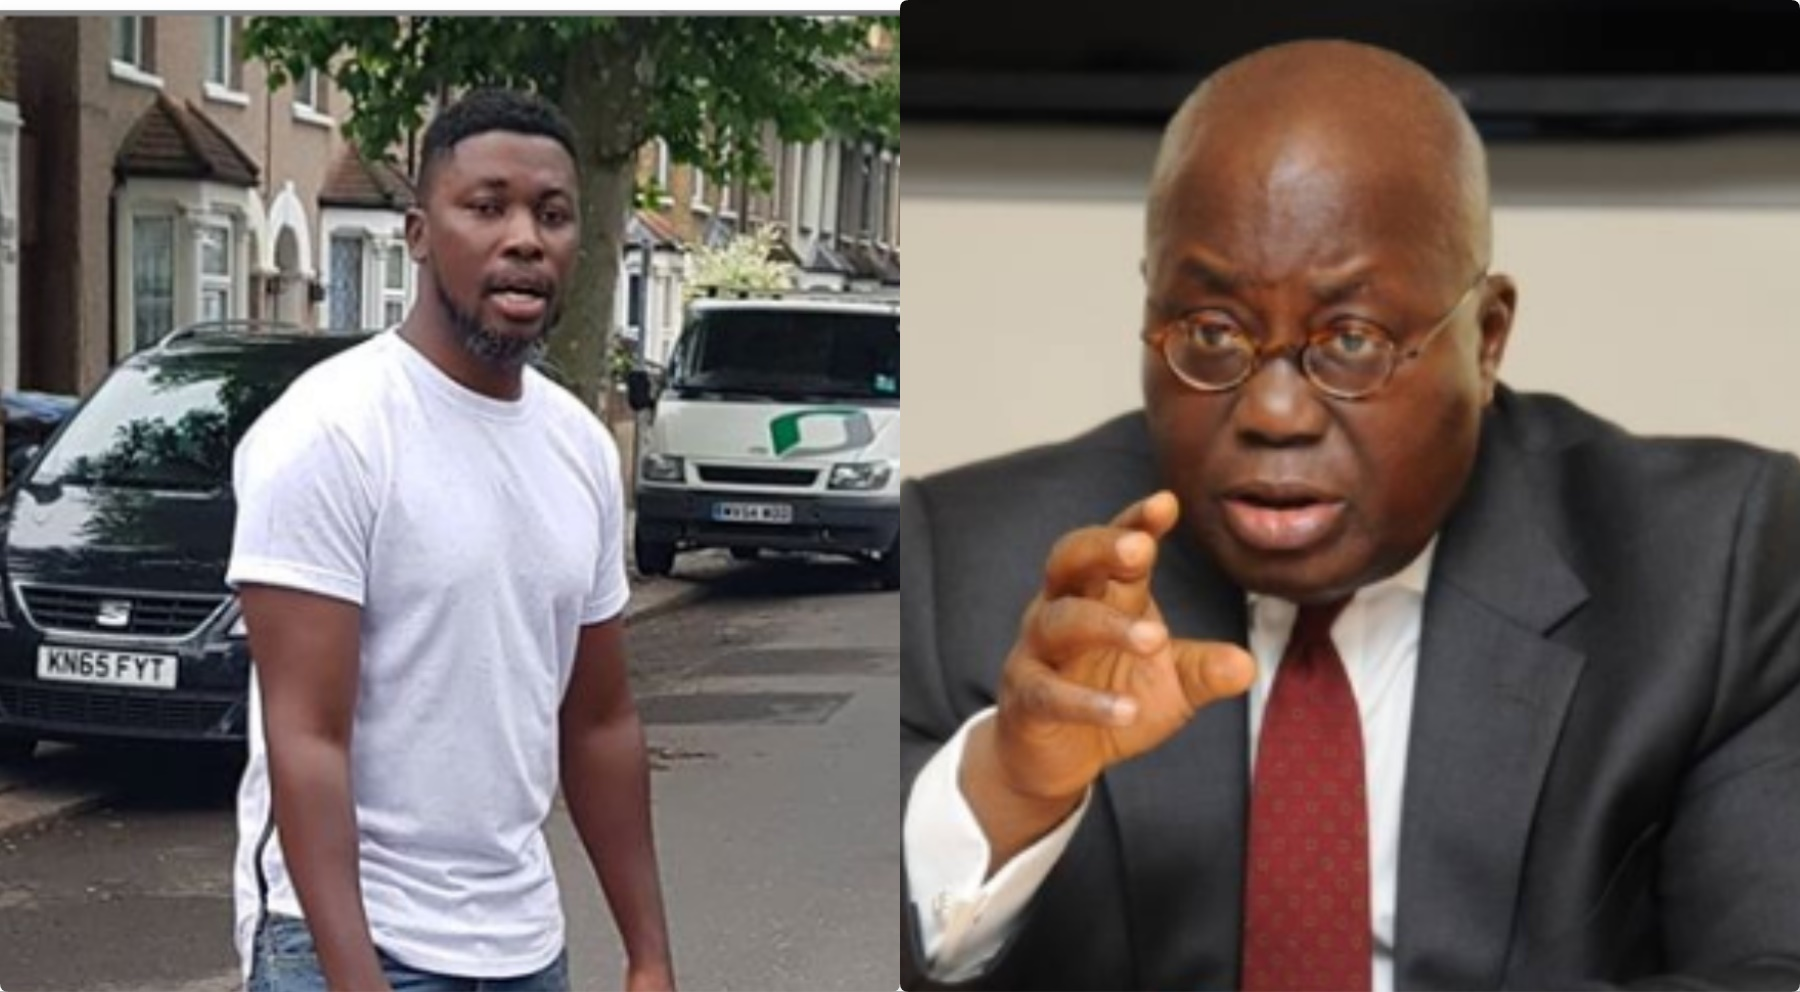 Sɛ wagye wani so - A Plus mocks Akufo-Addo over 'life support' Free SHS, and other policies